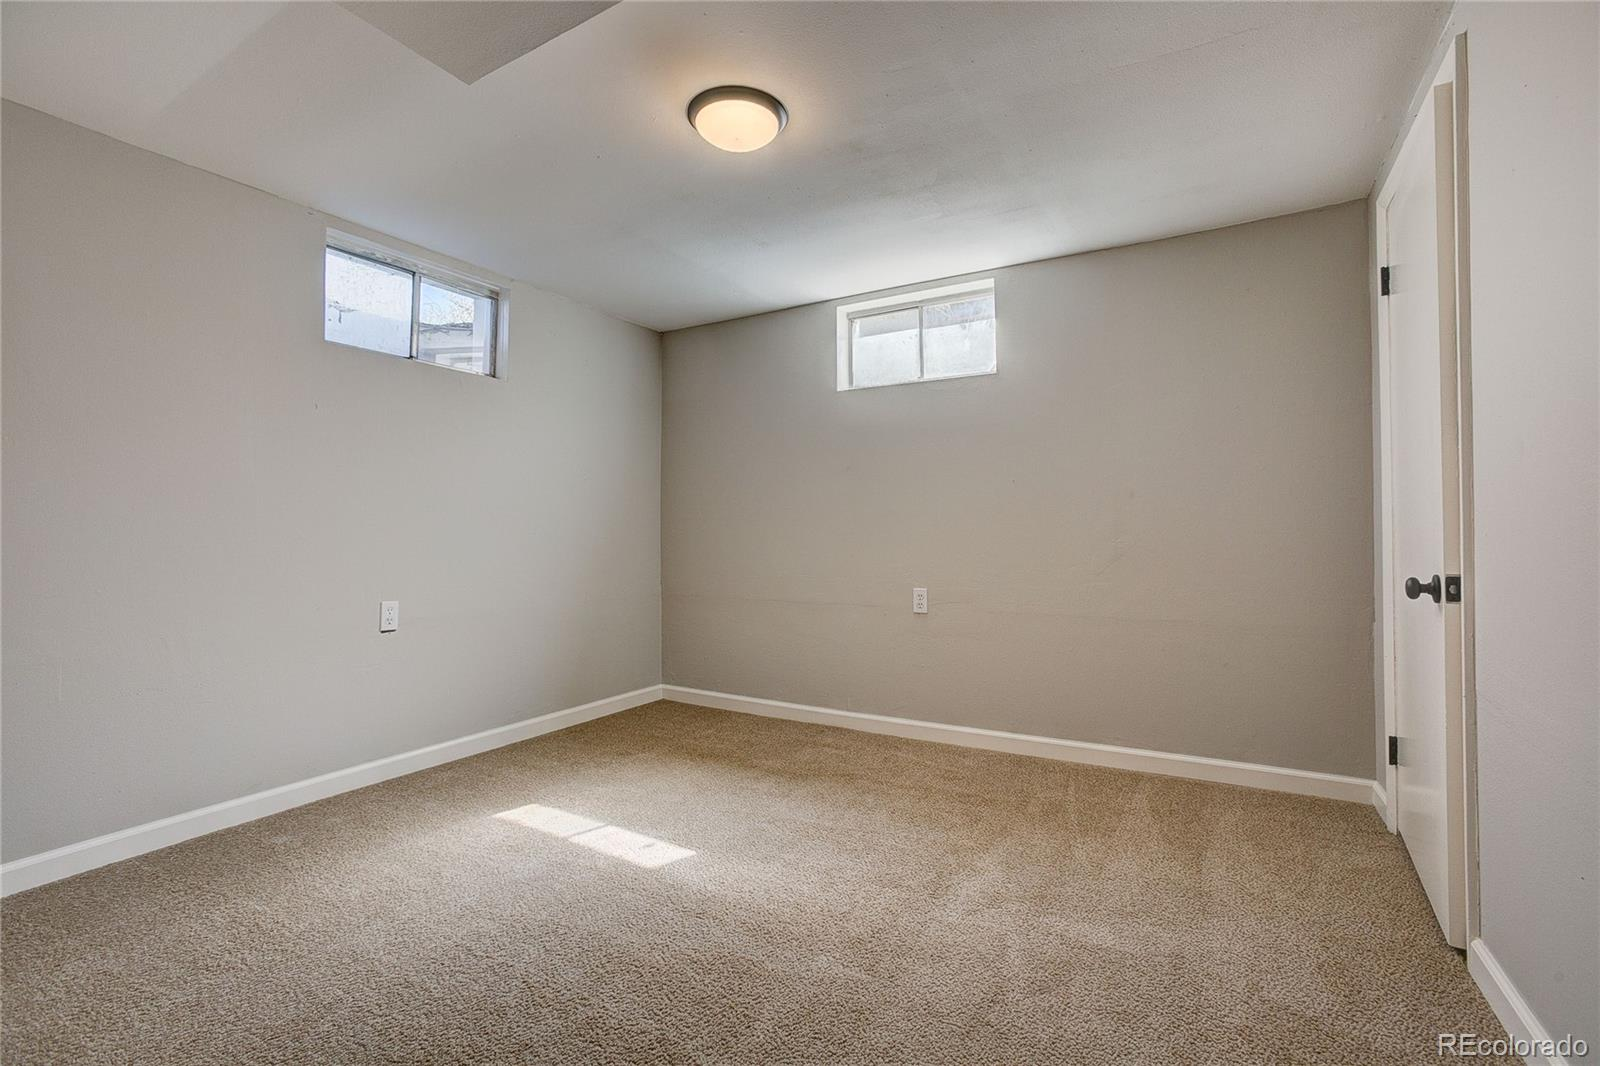 MLS# 9710462 - 28 - 1250 W 7th Ave Dr, Broomfield, CO 80020